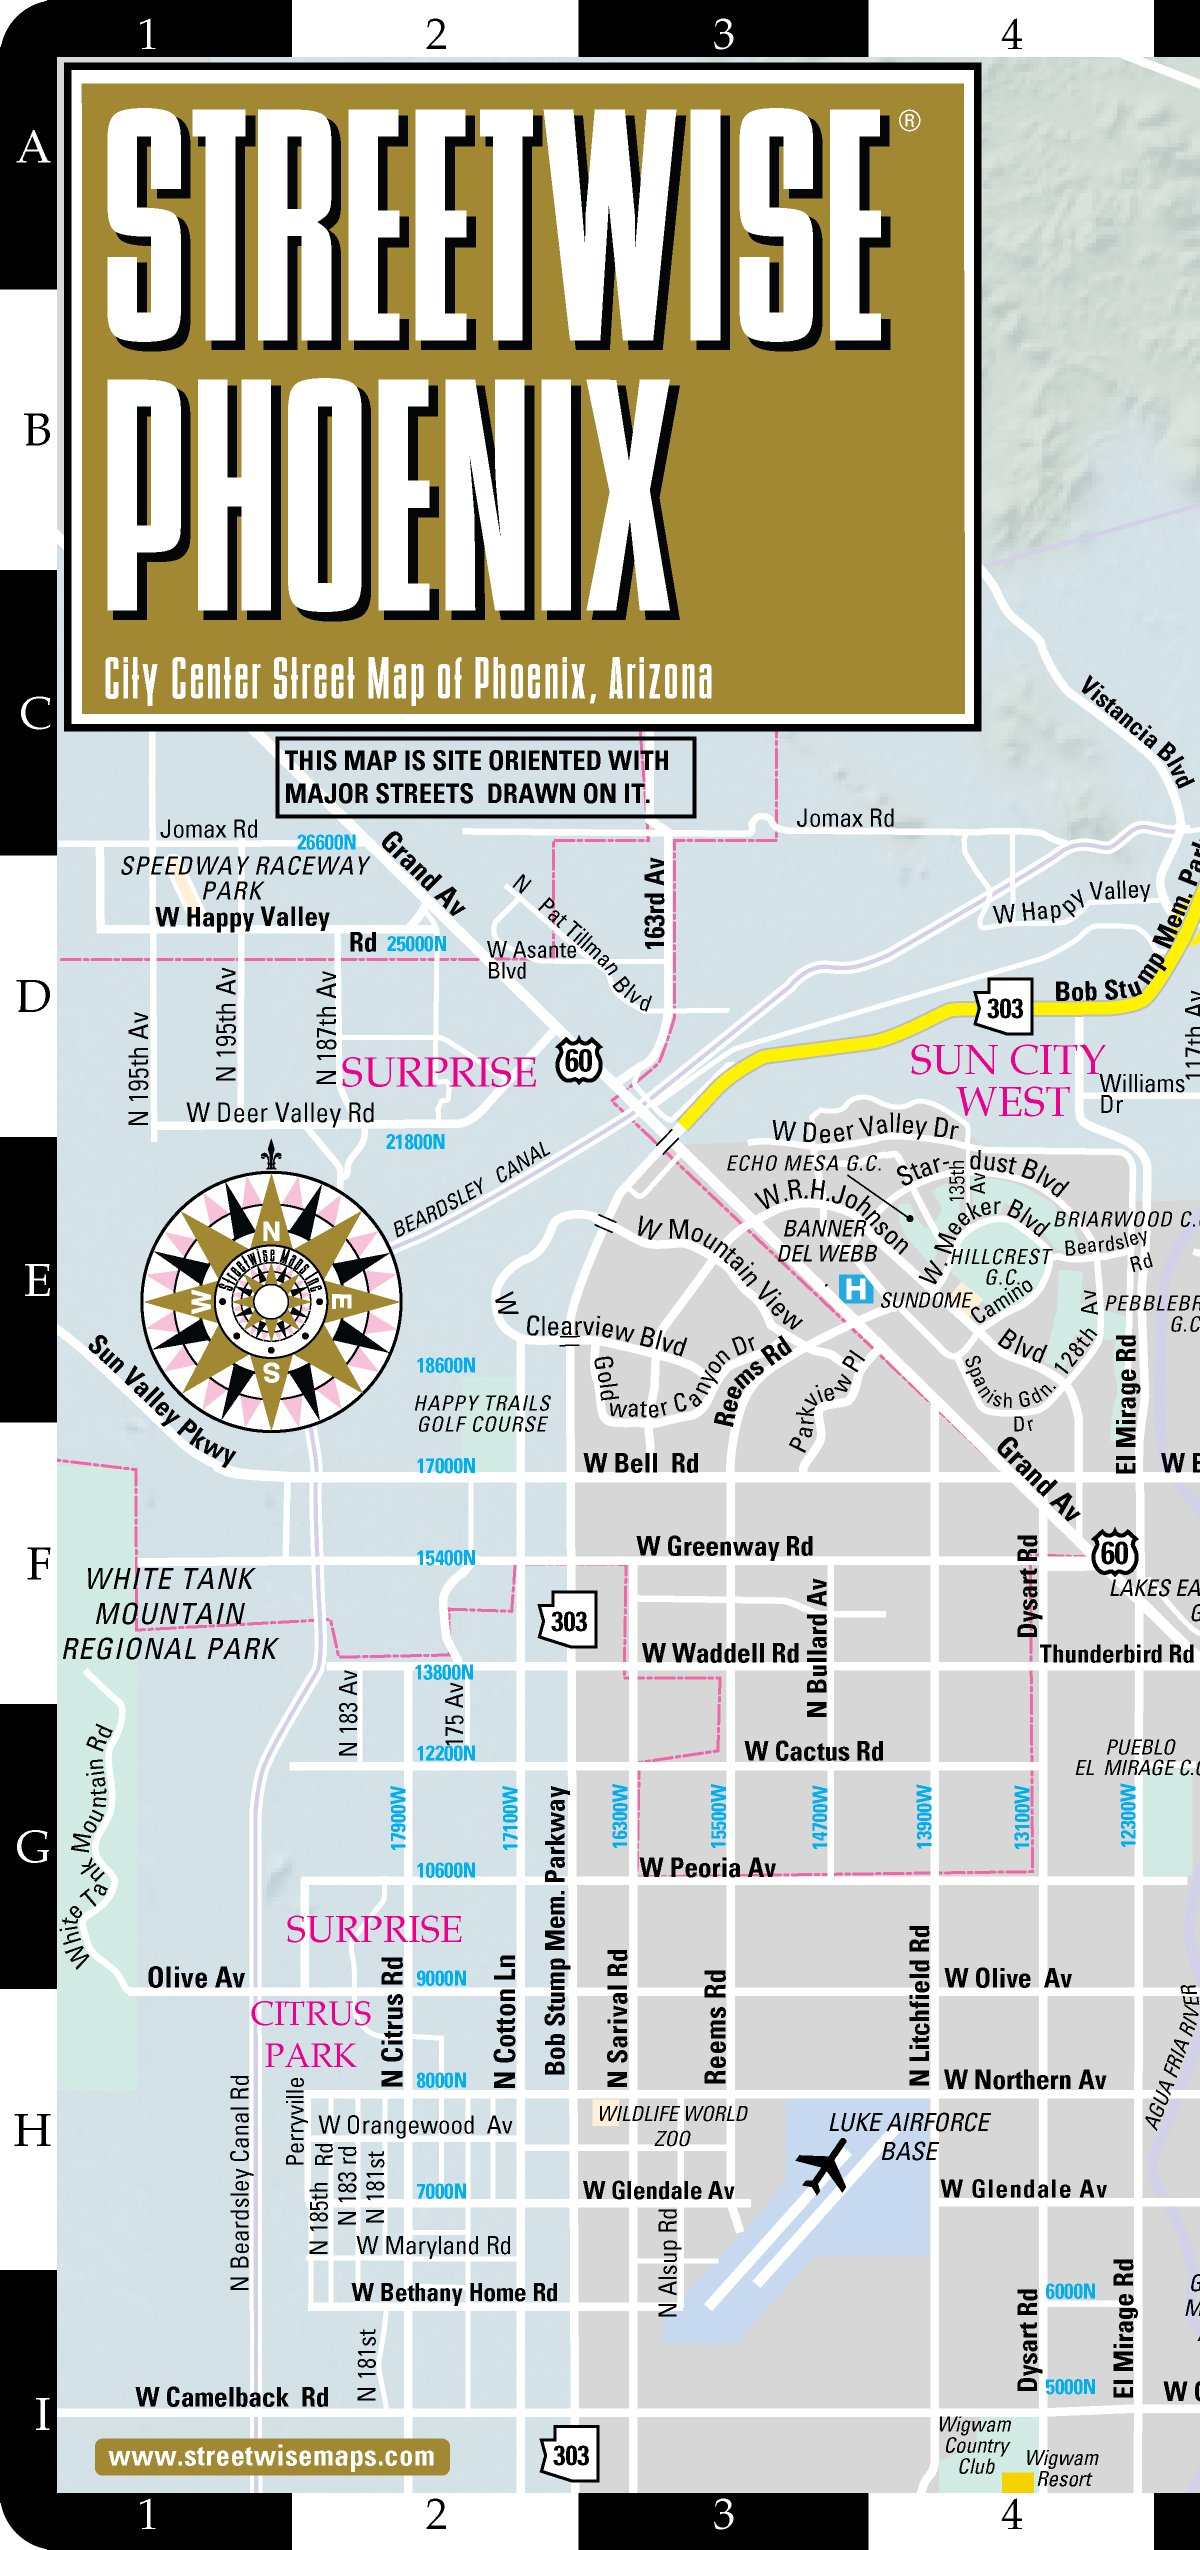 A Map Of Phoenix Arizona.Streetwise Phoenix Map Laminated City Center Street Map Of Phoenix